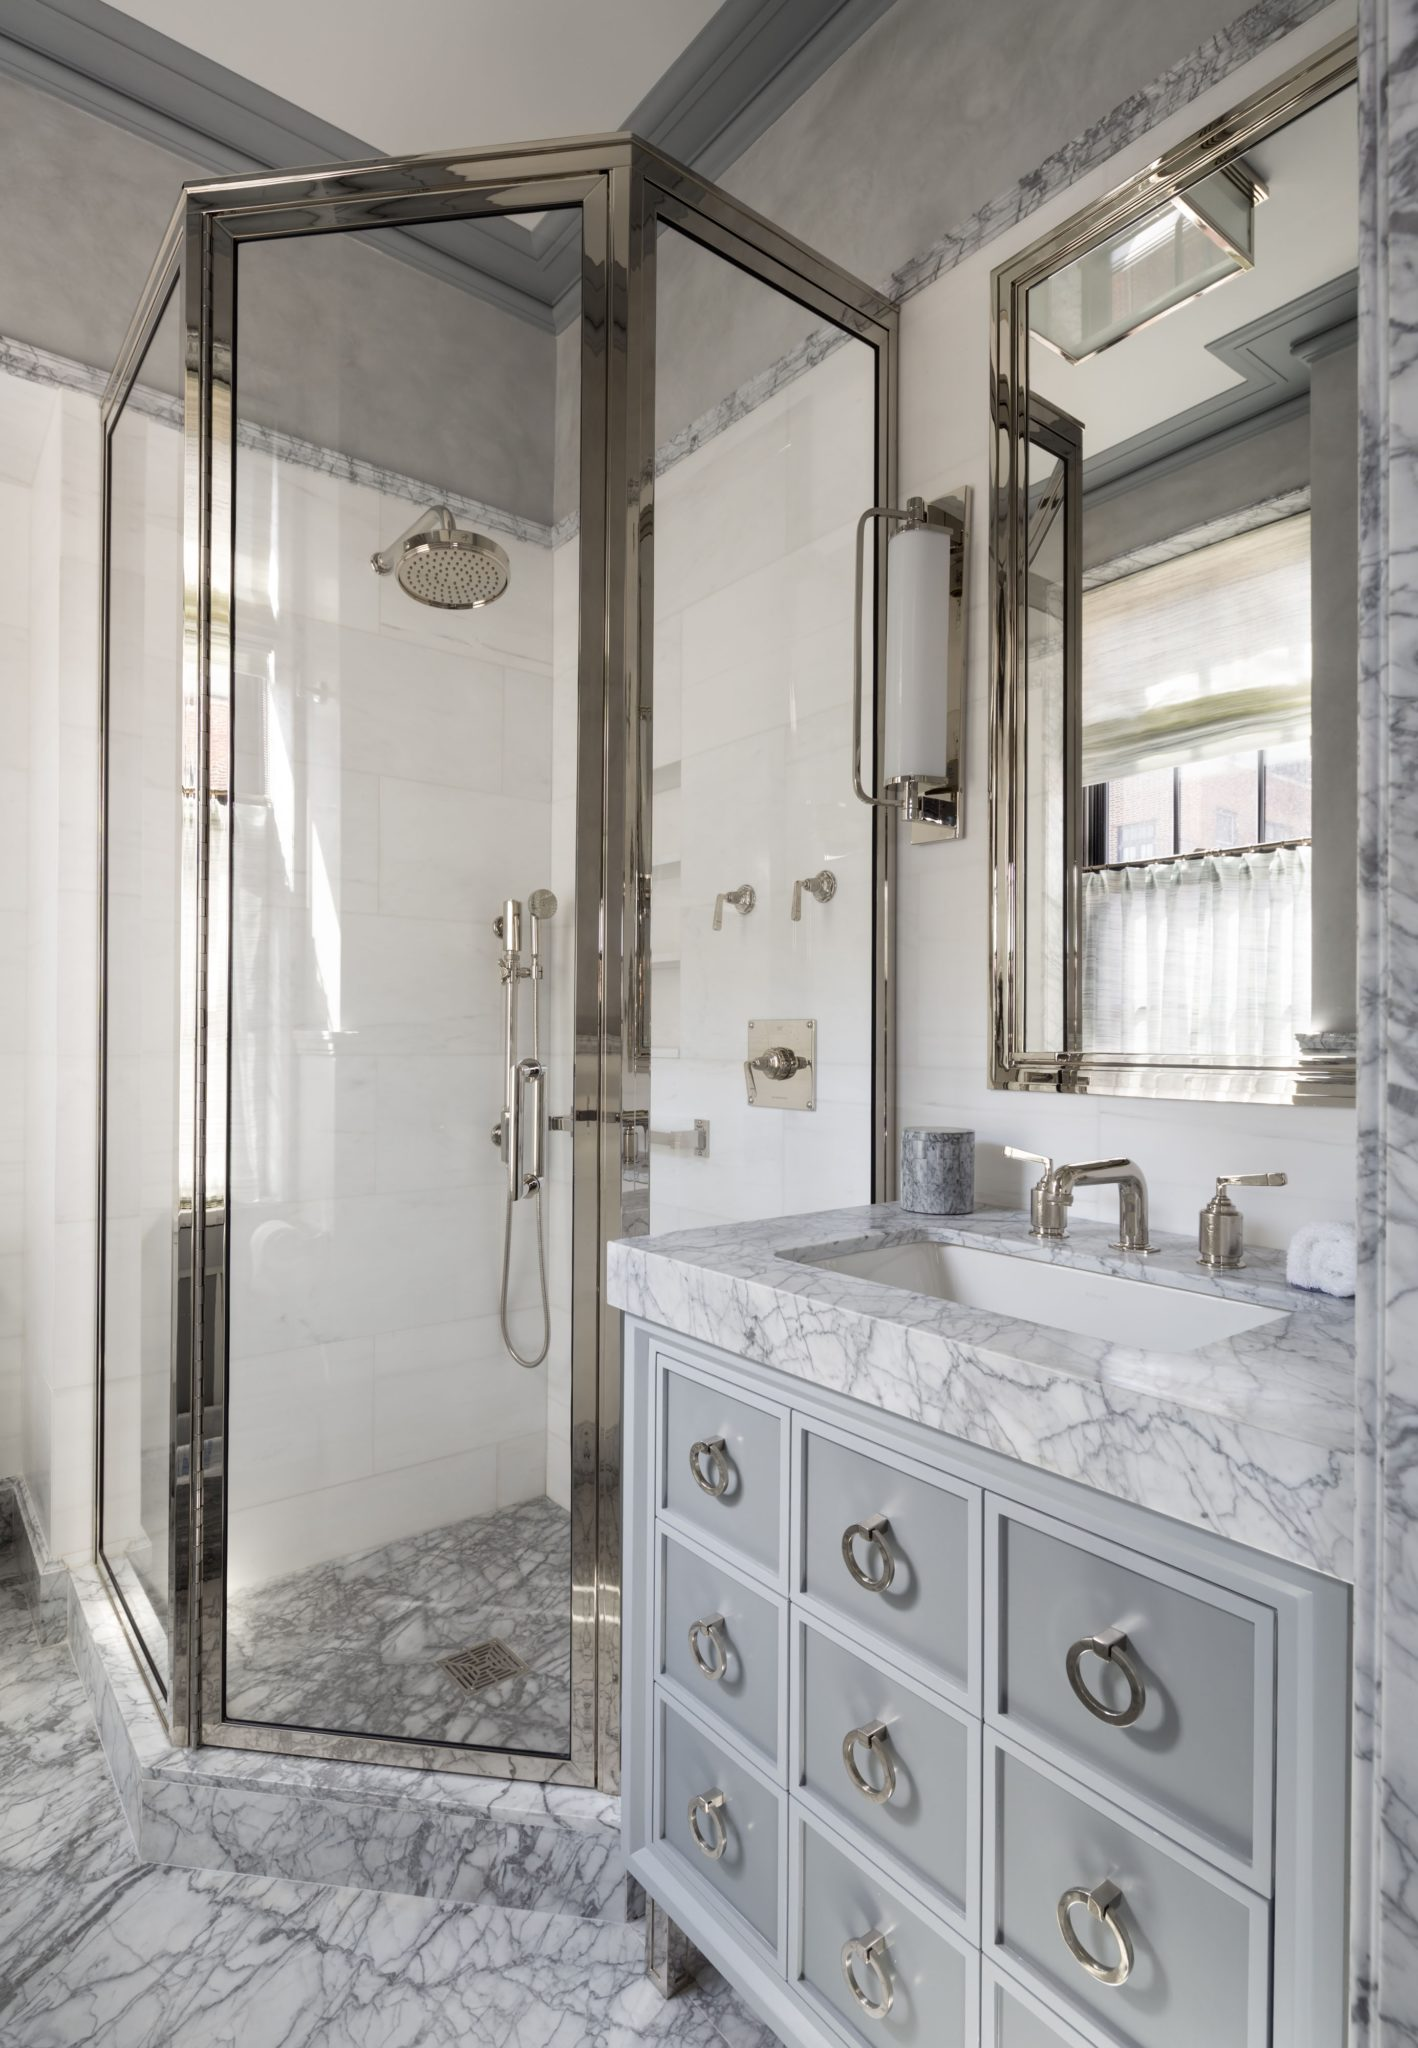 The bath off the second bedroom features a custom vanity.